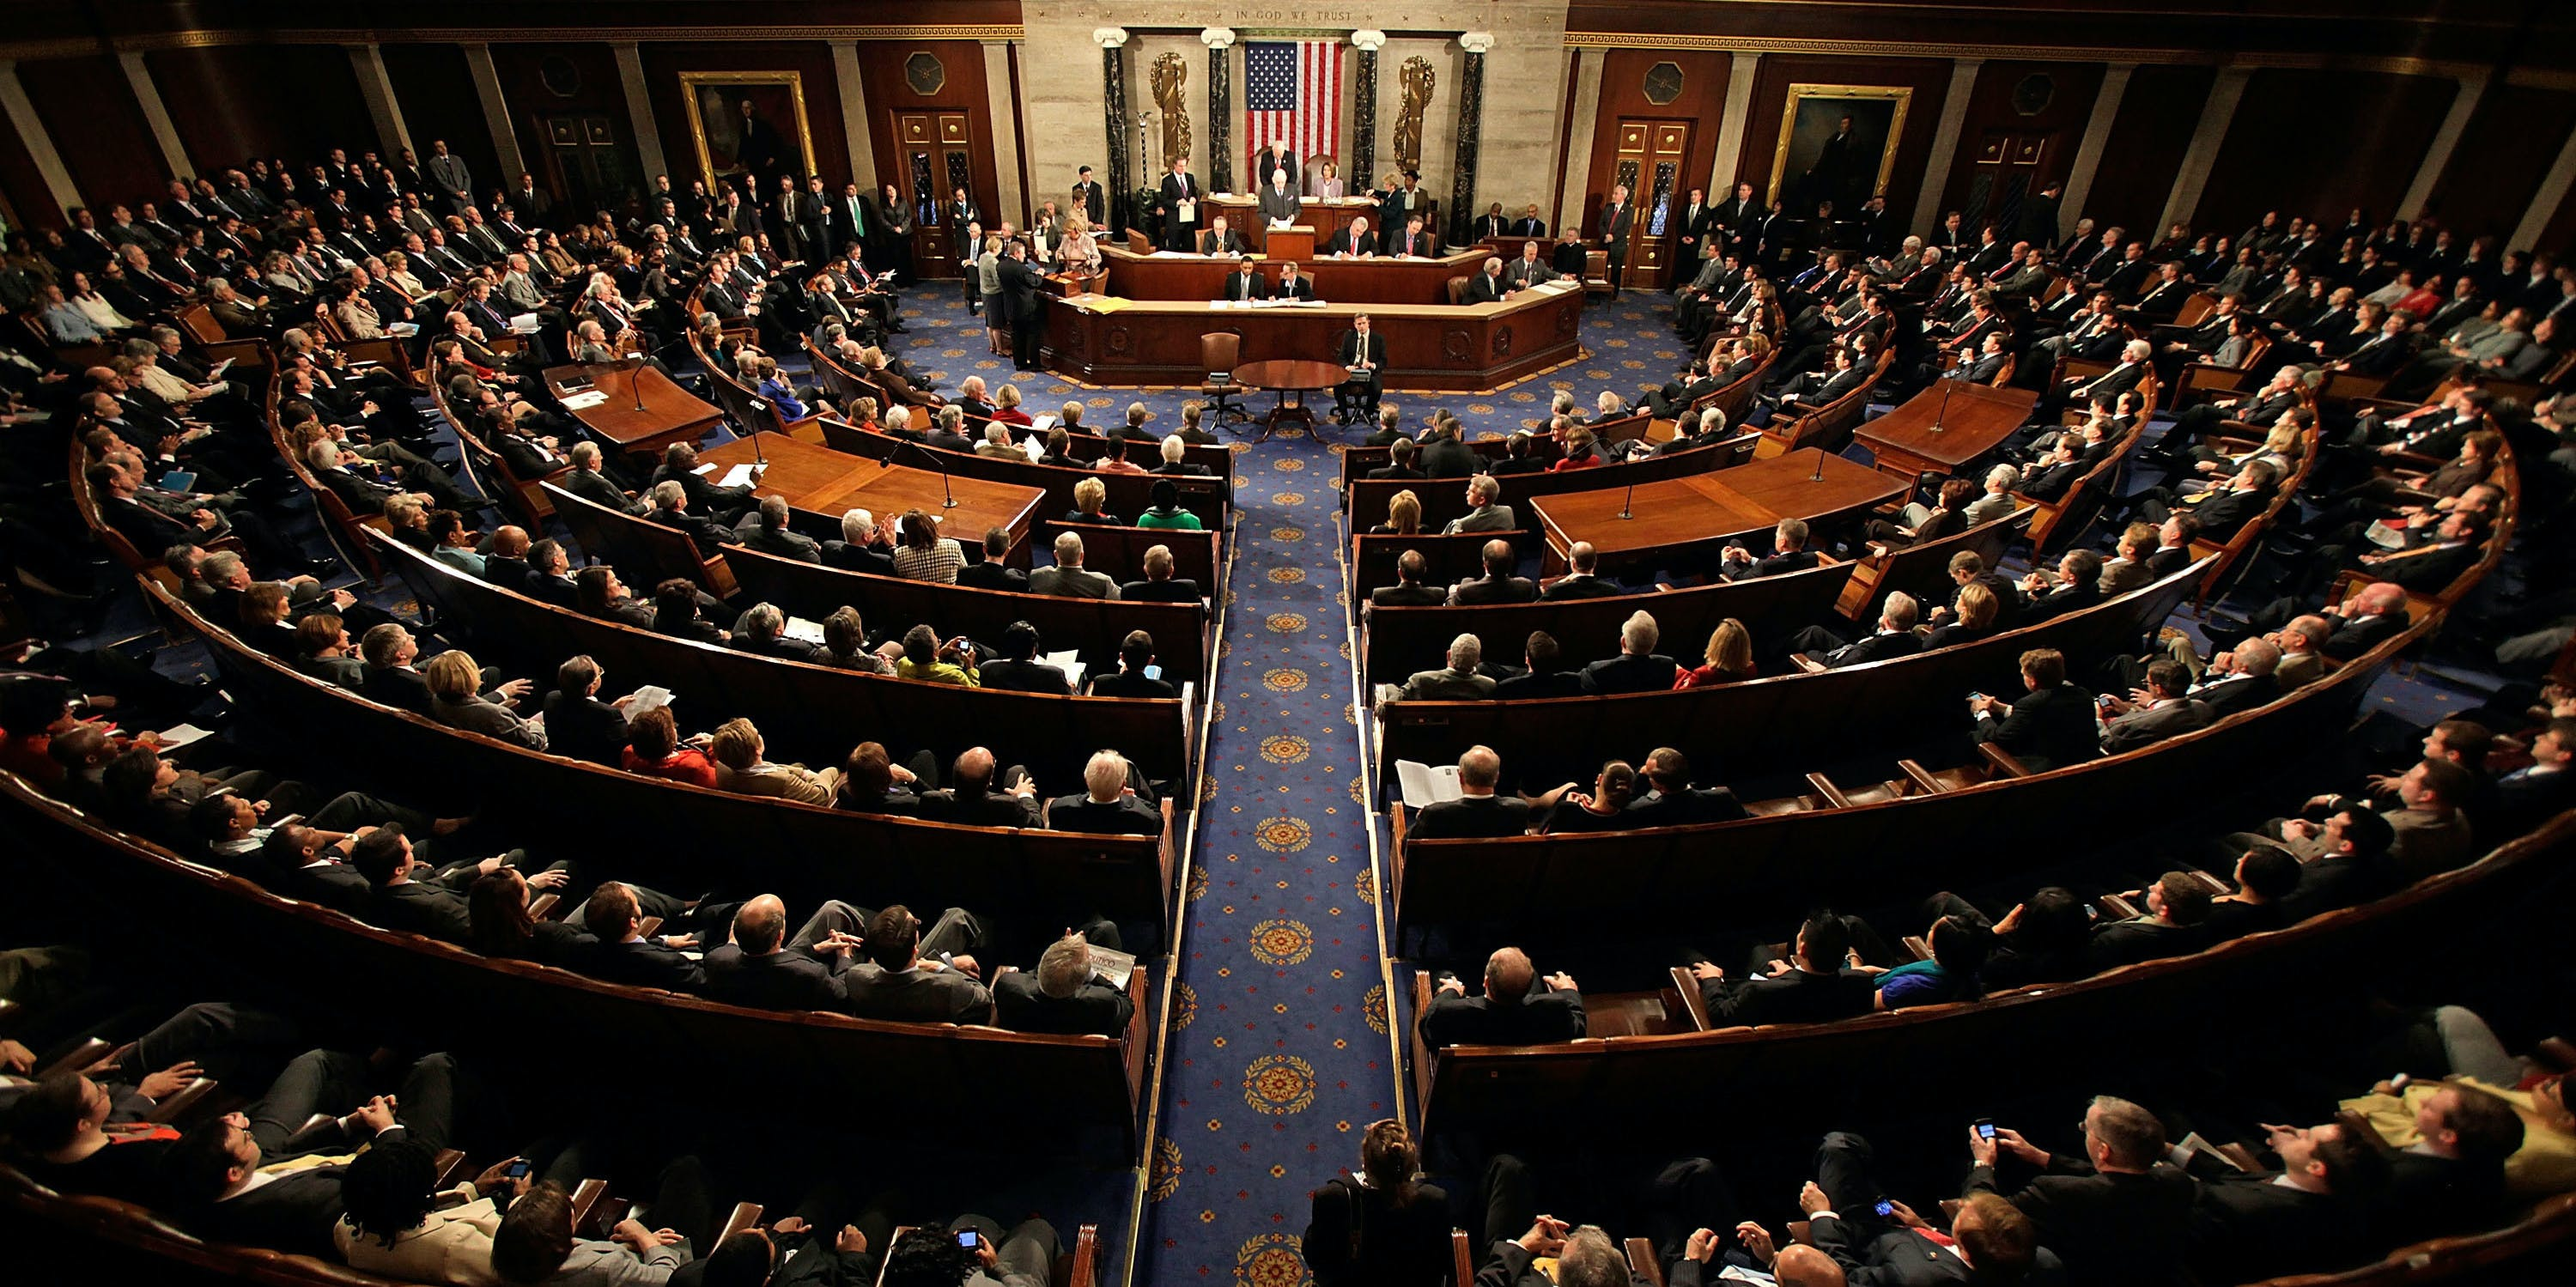 A joint session of Congress meets to count the Electoral College vote from the 2008 presidential election the House Chamber in the U.S. Capitol  January 8, 2009 in Washington, DC. Congress met in a joint session to tally the Electoral College votes and certify Barack Obama to be the winner of the 2008 presidential election.